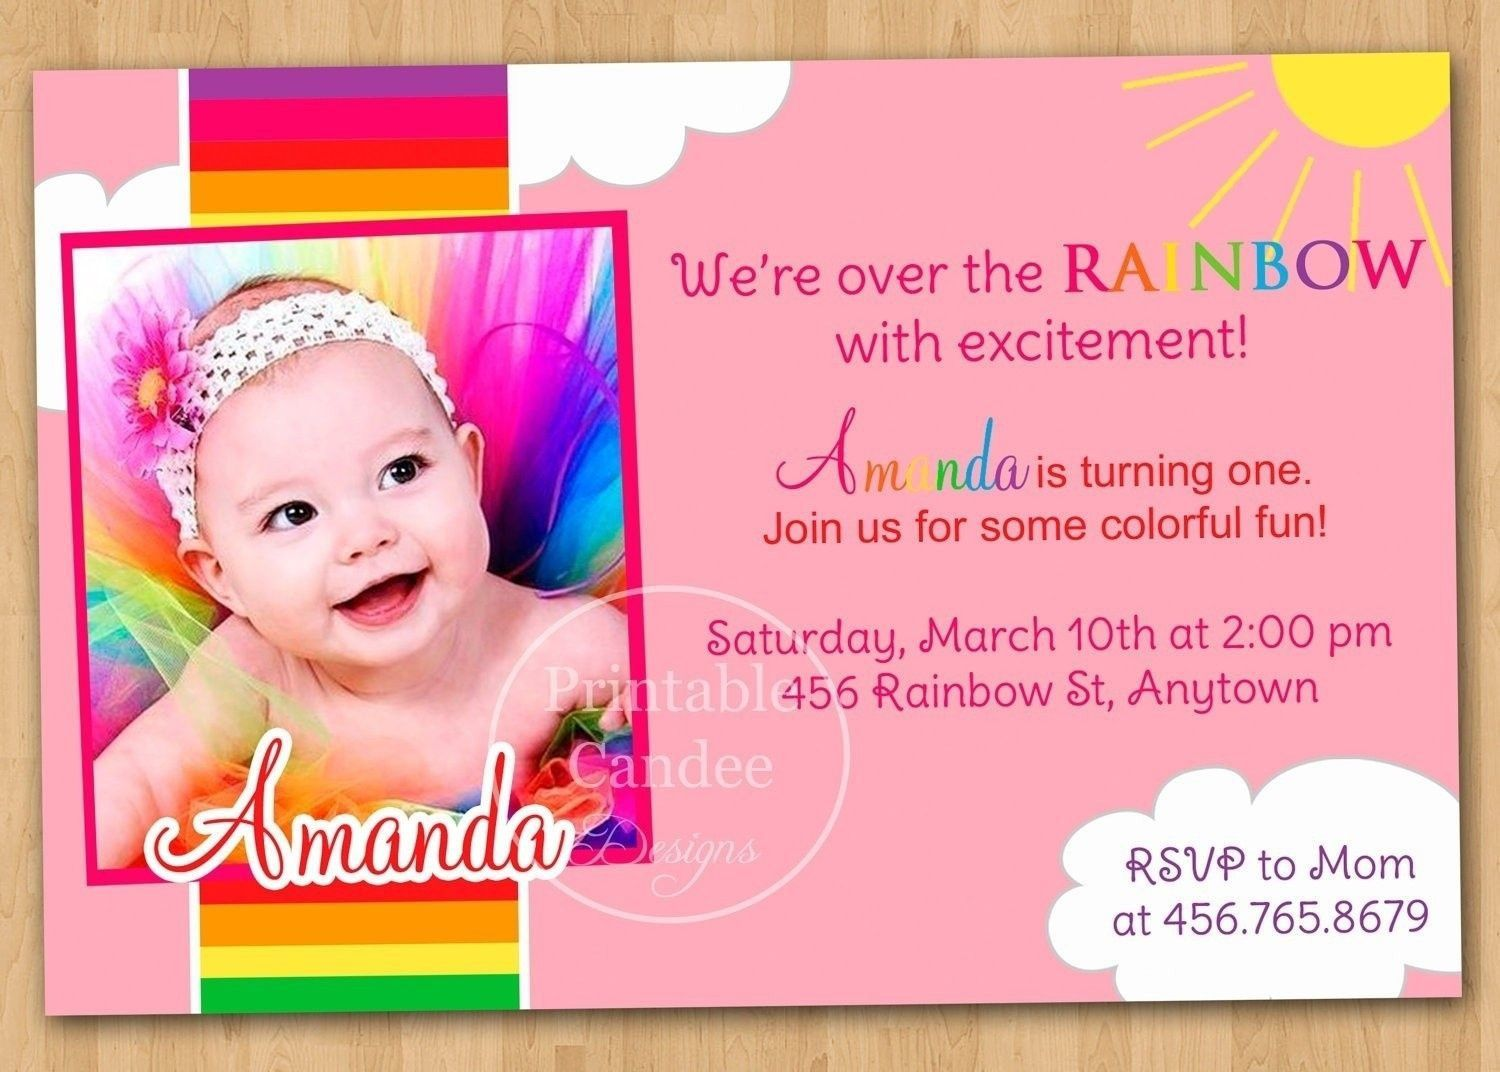 003 Exceptional Free Online 1st Birthday Invitation Card Maker For Twin Highest Clarity Full